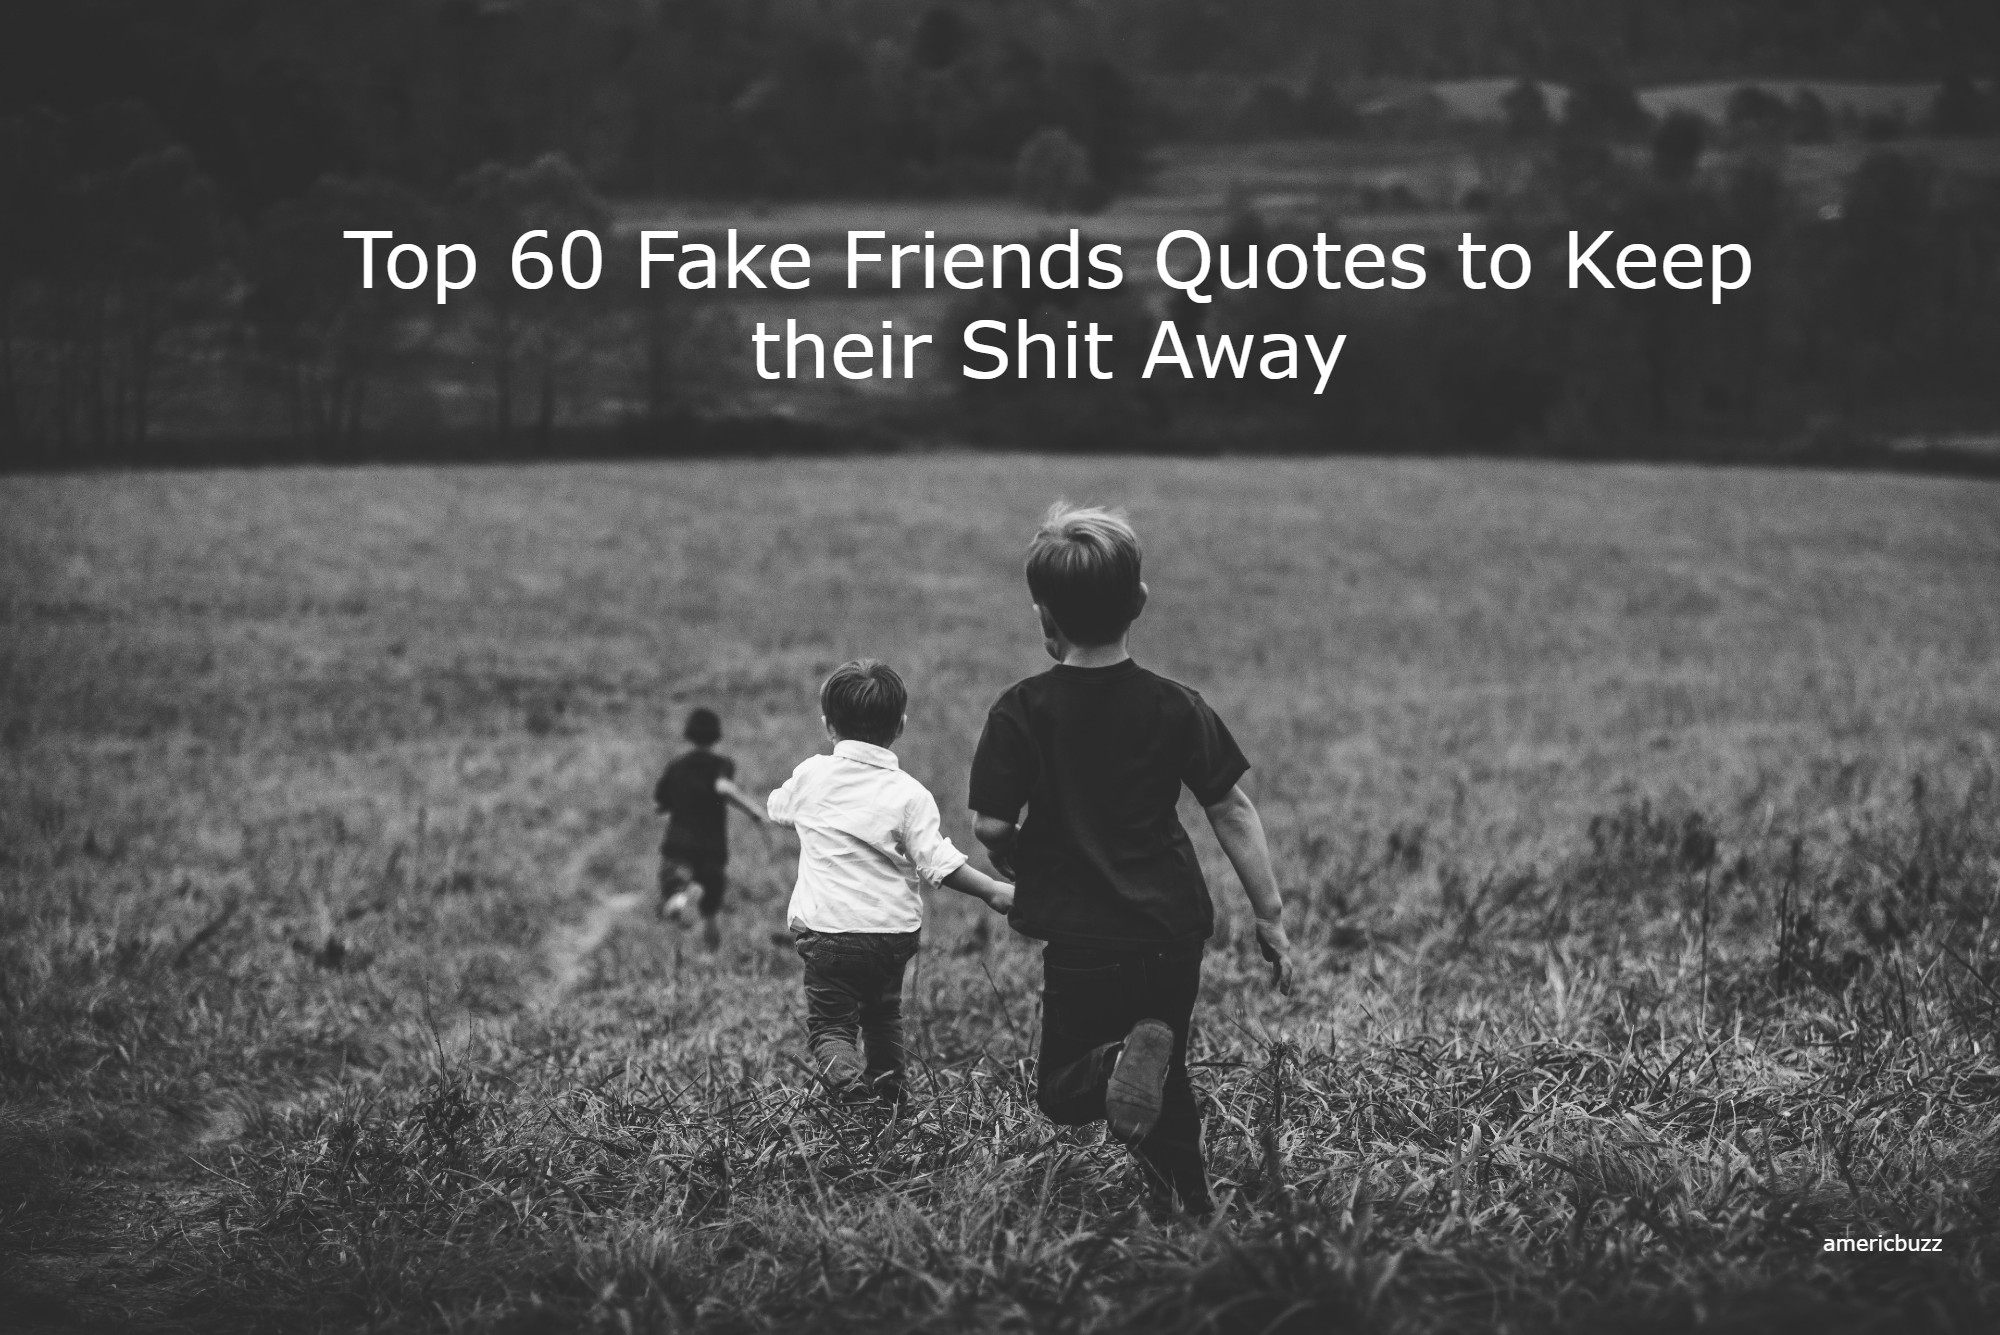 Top 60 Fake Friends Quotes to Keep their Shit Away